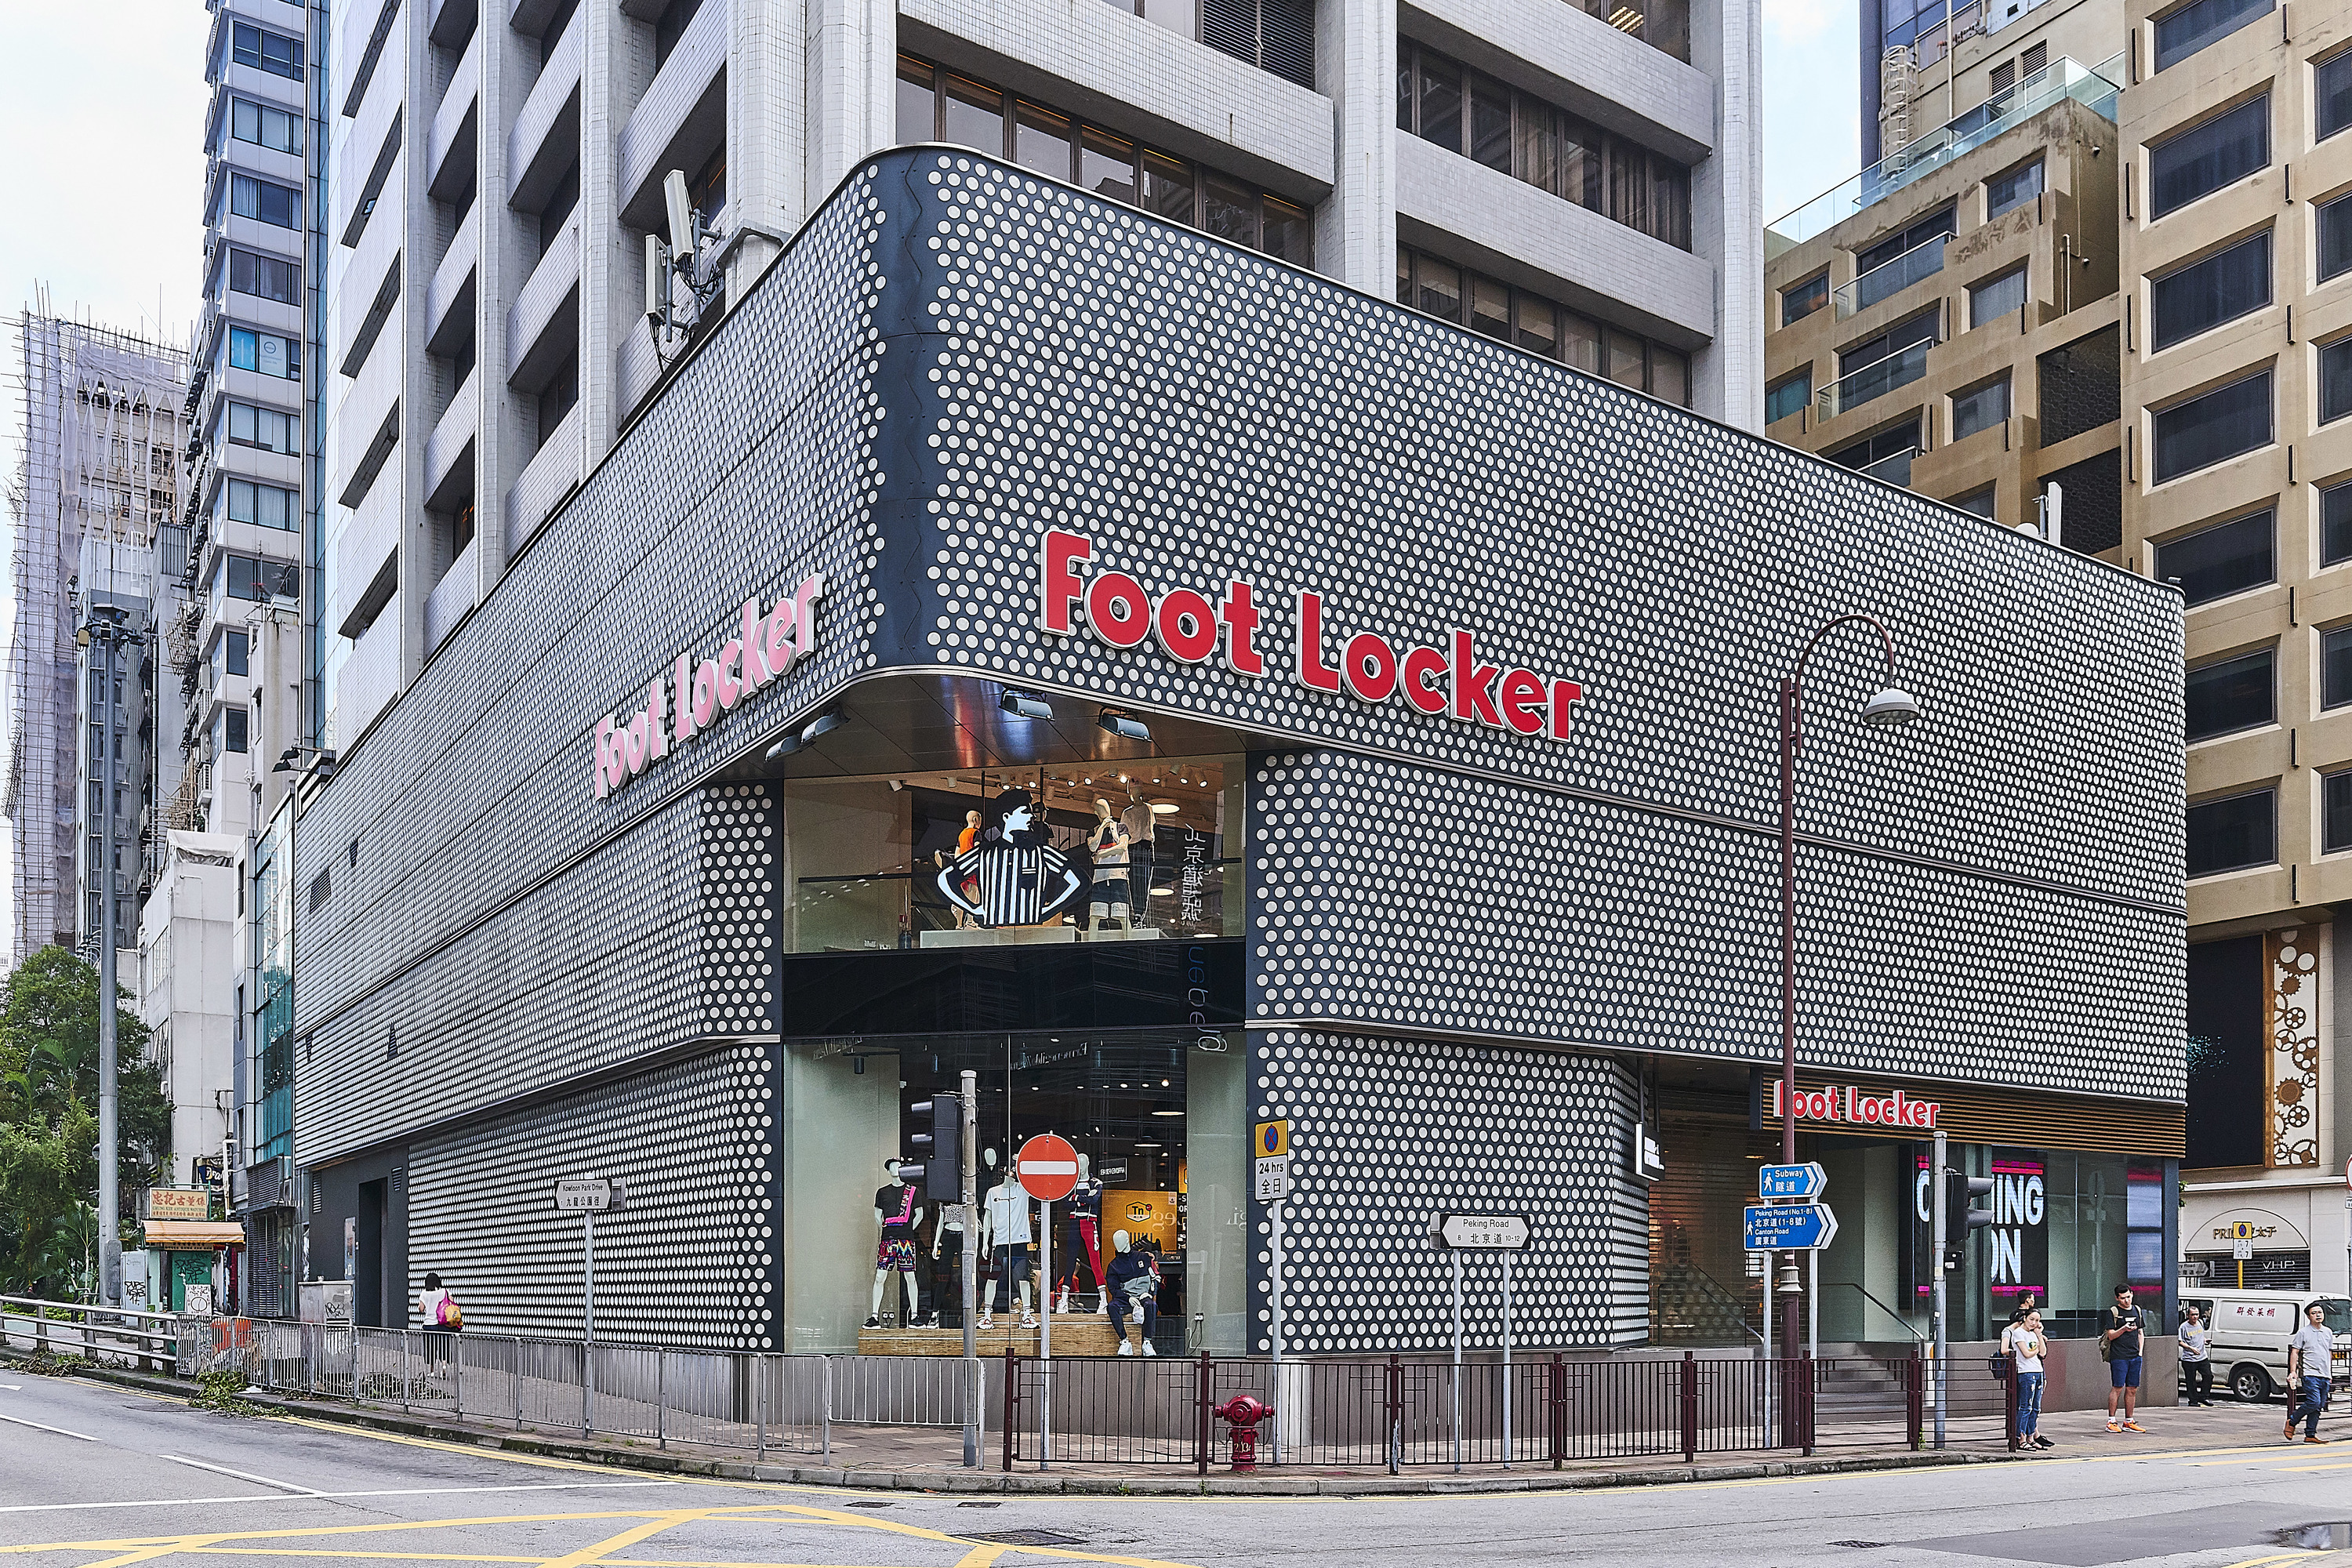 強勢回歸!Foot Locker 旗艦店正式登陸尖沙咀